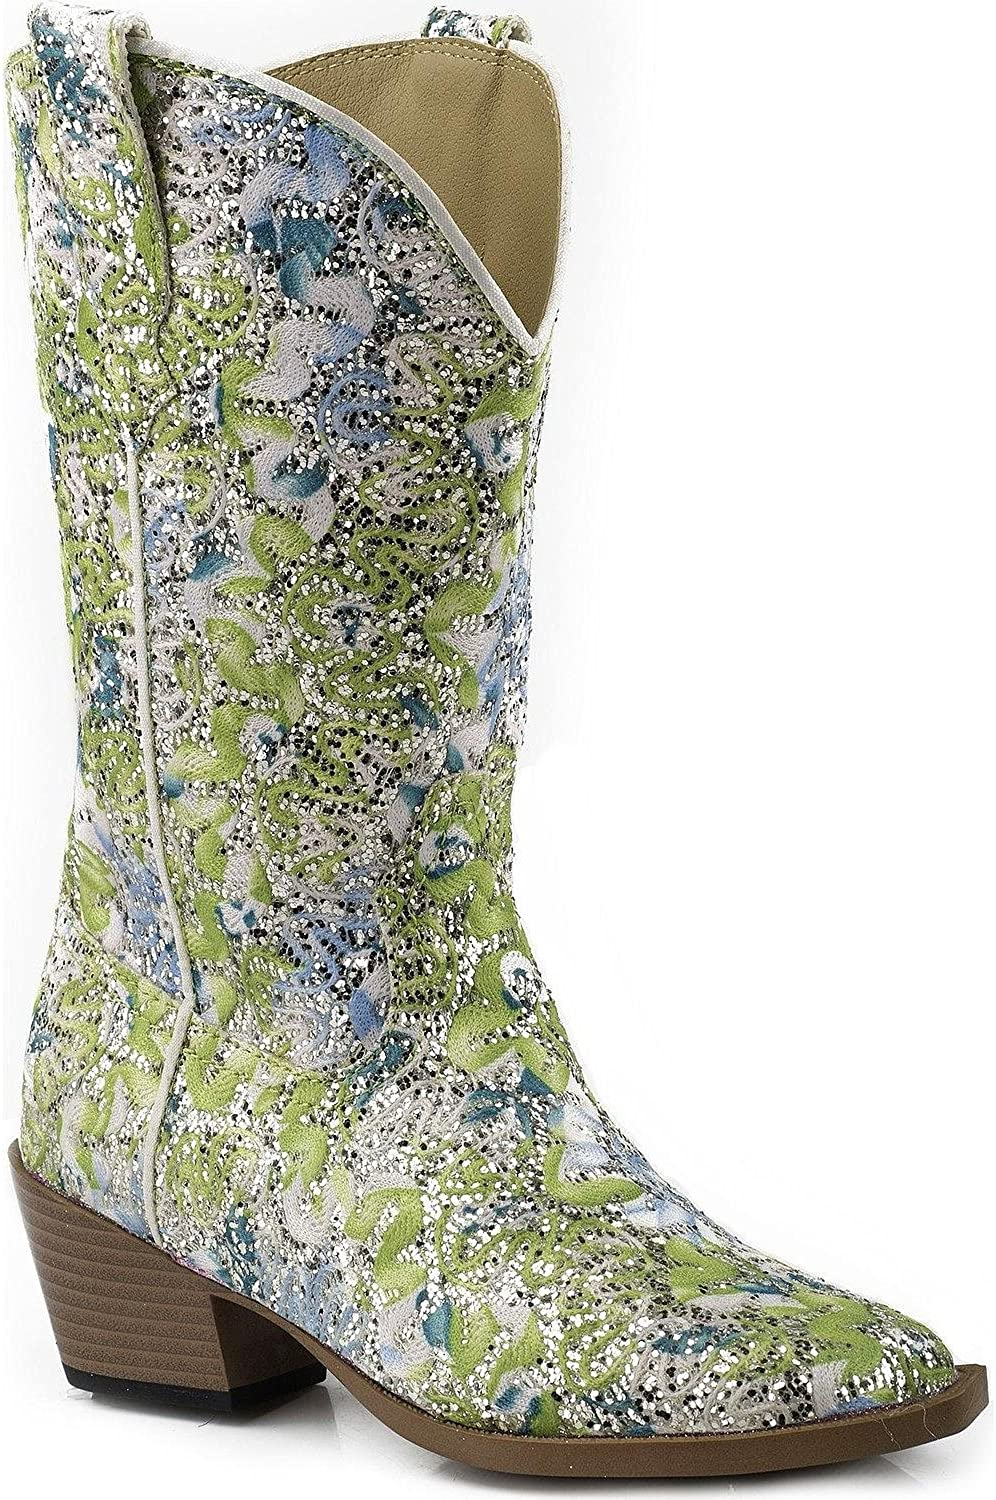 Roper Girls Glittery Floral Cowgirl Boot Snip Toe Size 11